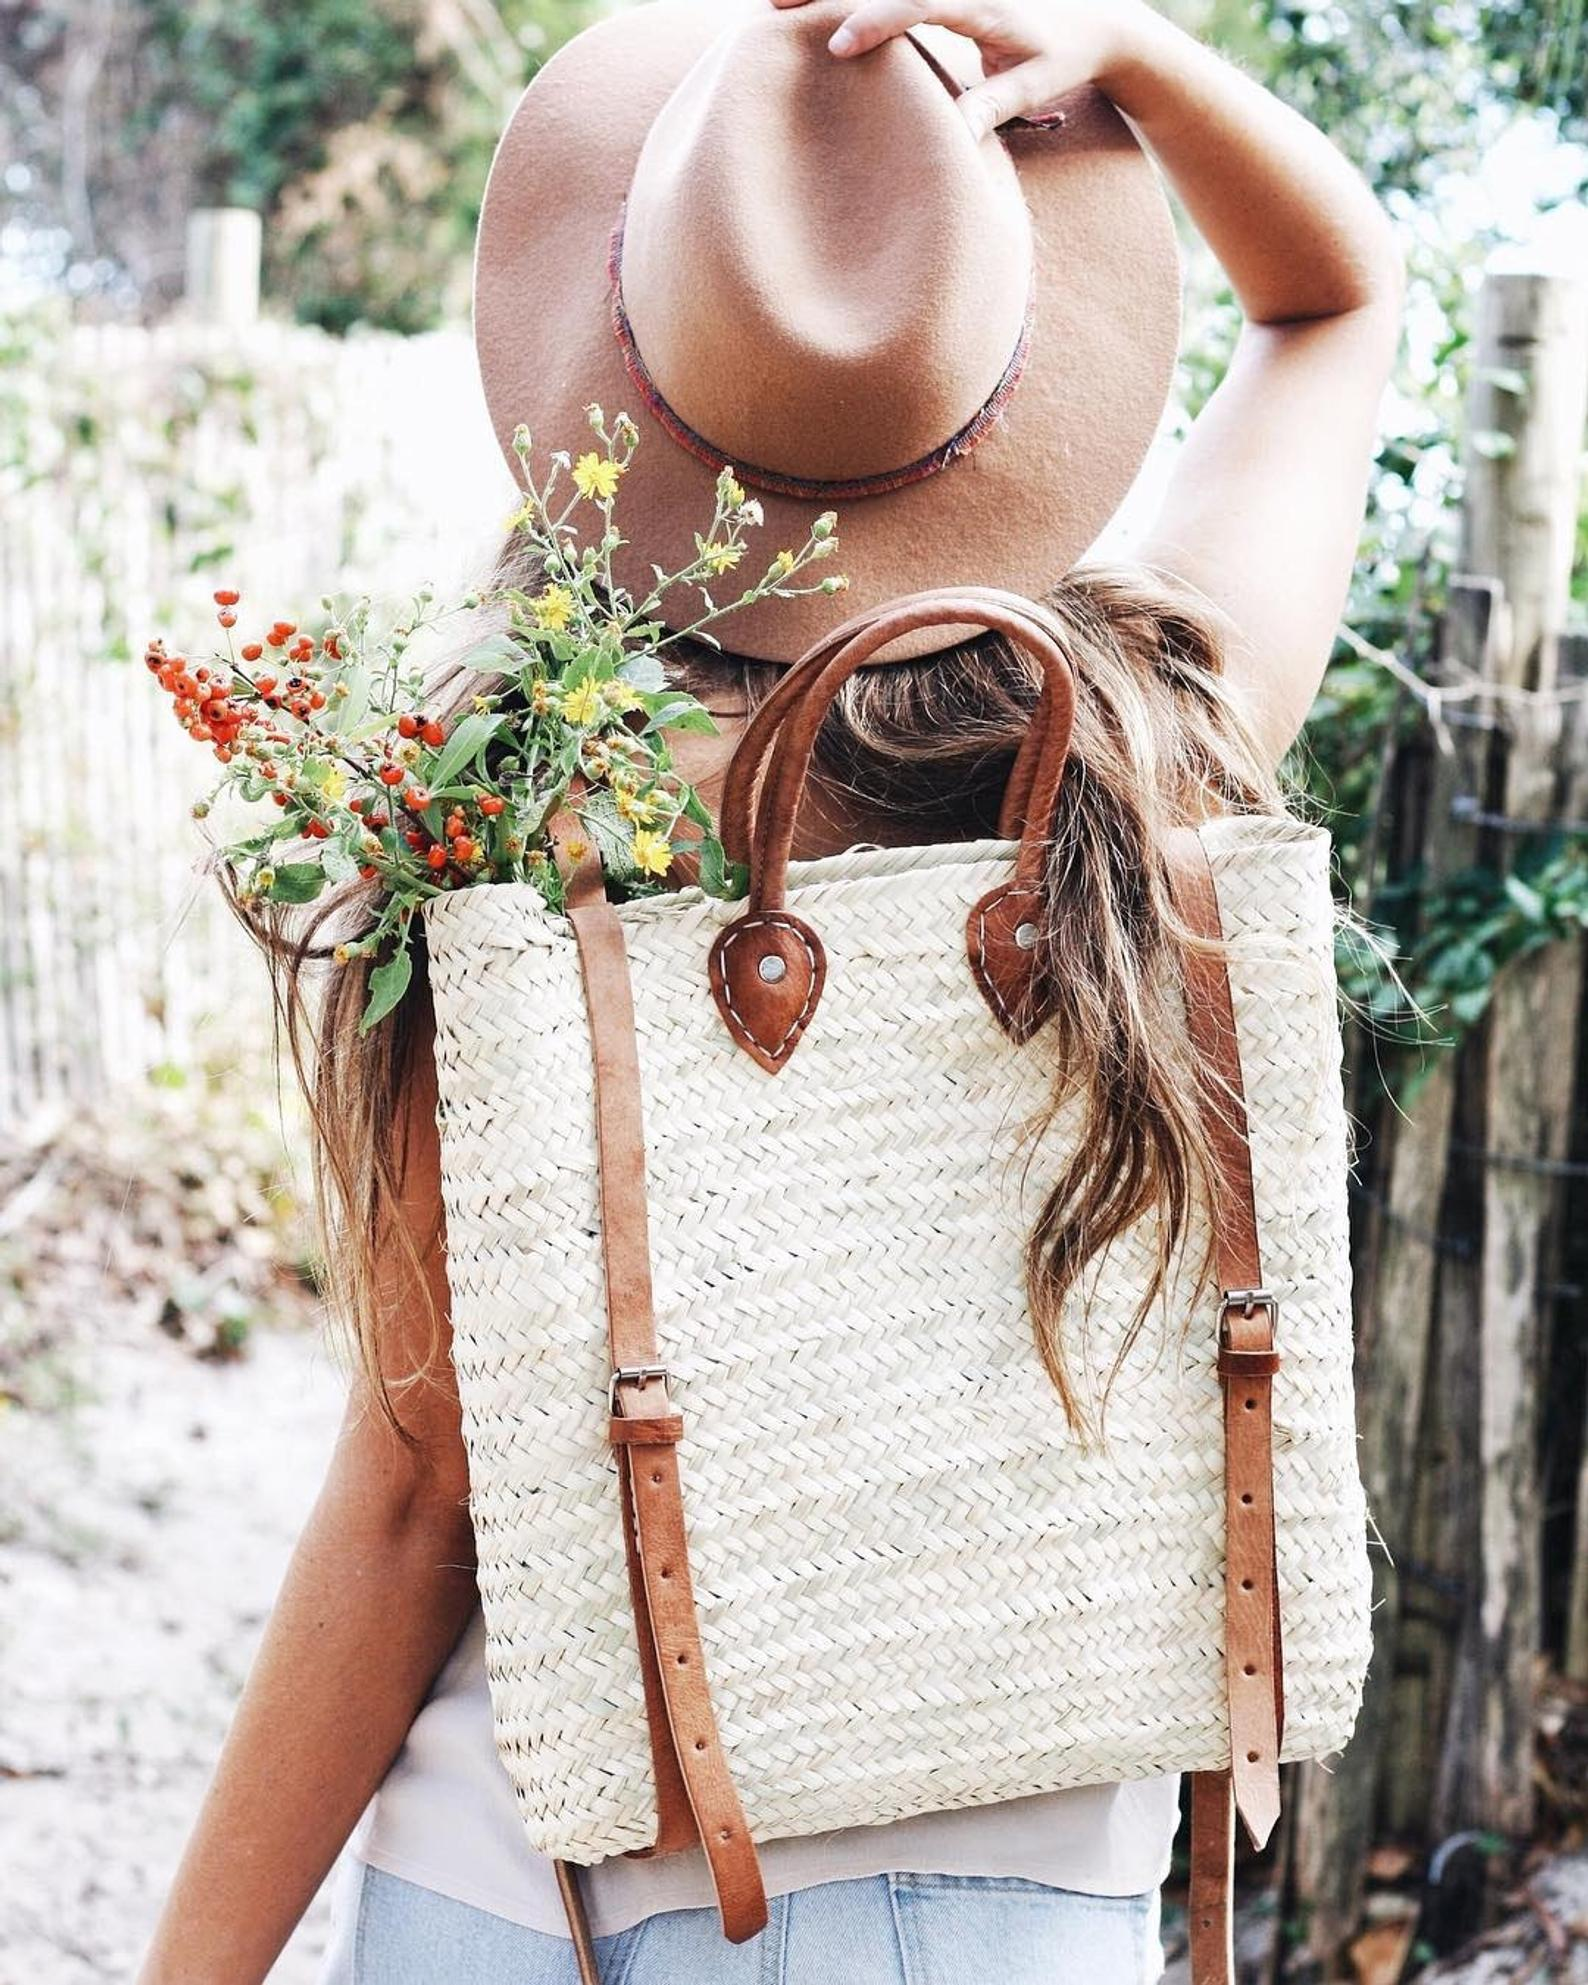 Handmade Straw Backpack By Woven Finds Co